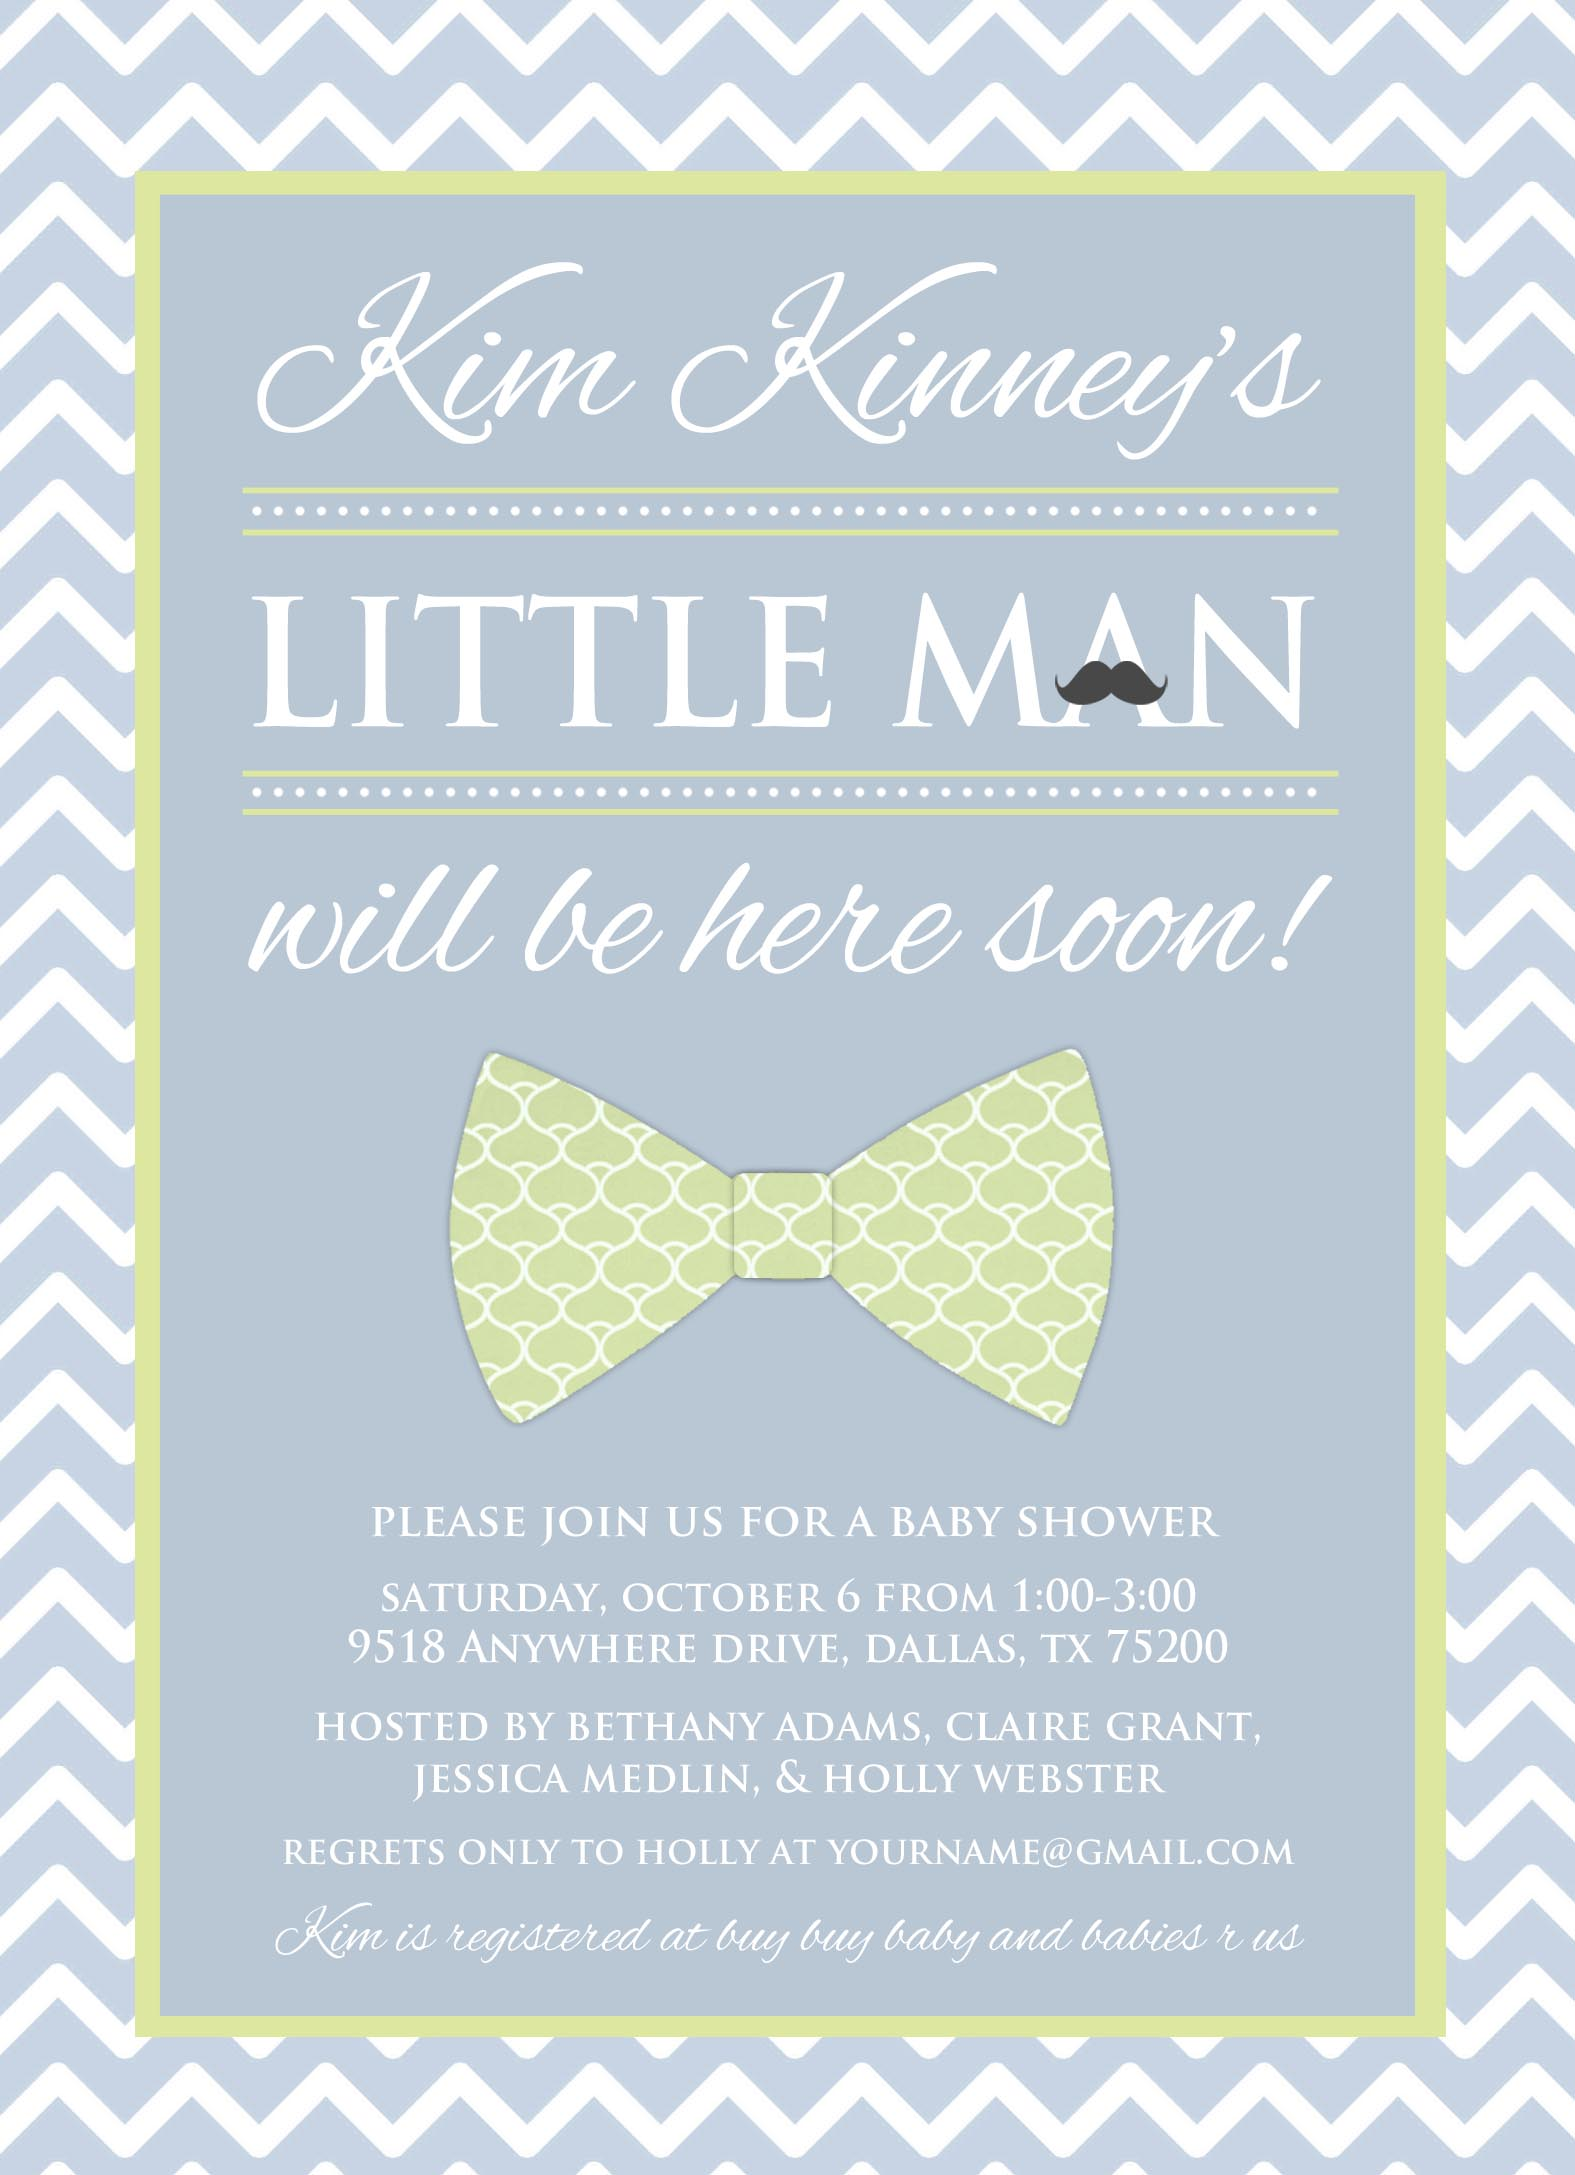 Baby shower paloma paper designs continue reading advertisements posted in baby showers tagged baby shower little man pronofoot35fo Image collections